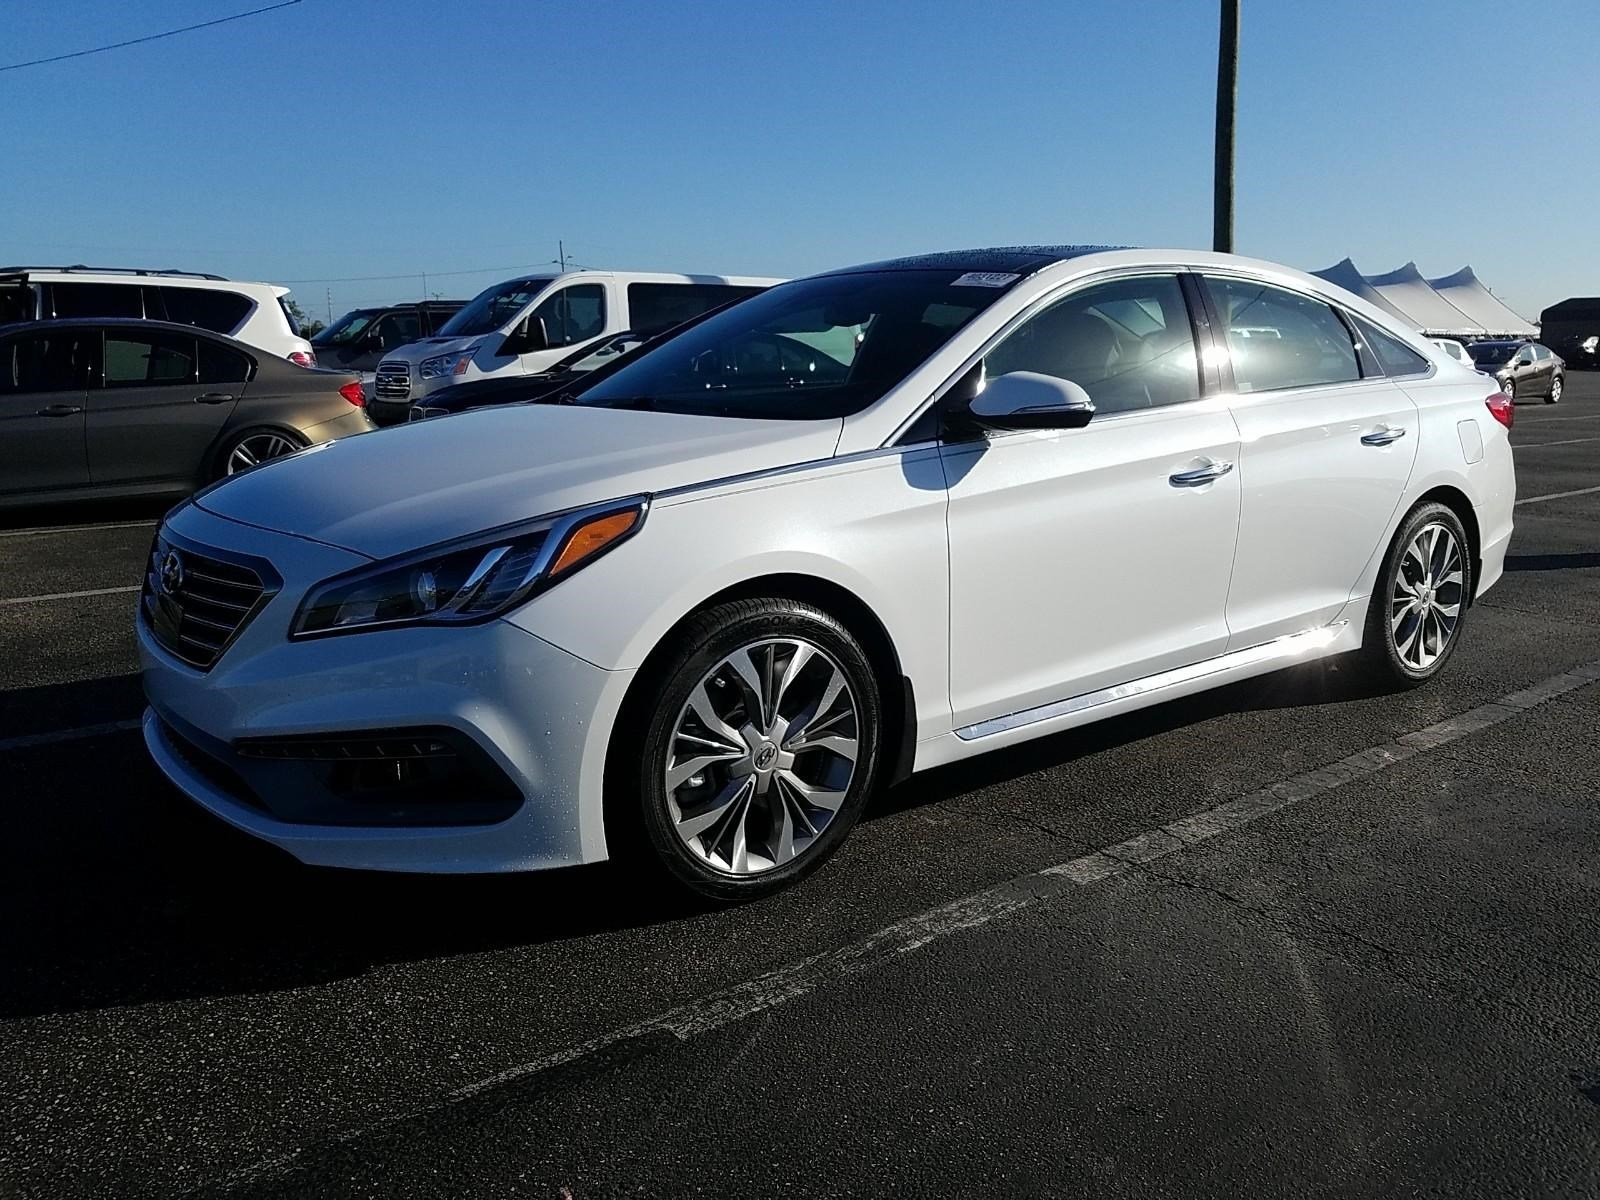 2015 Hyundai Sonata Limited 2 0T 4dr Car near Nashville FH